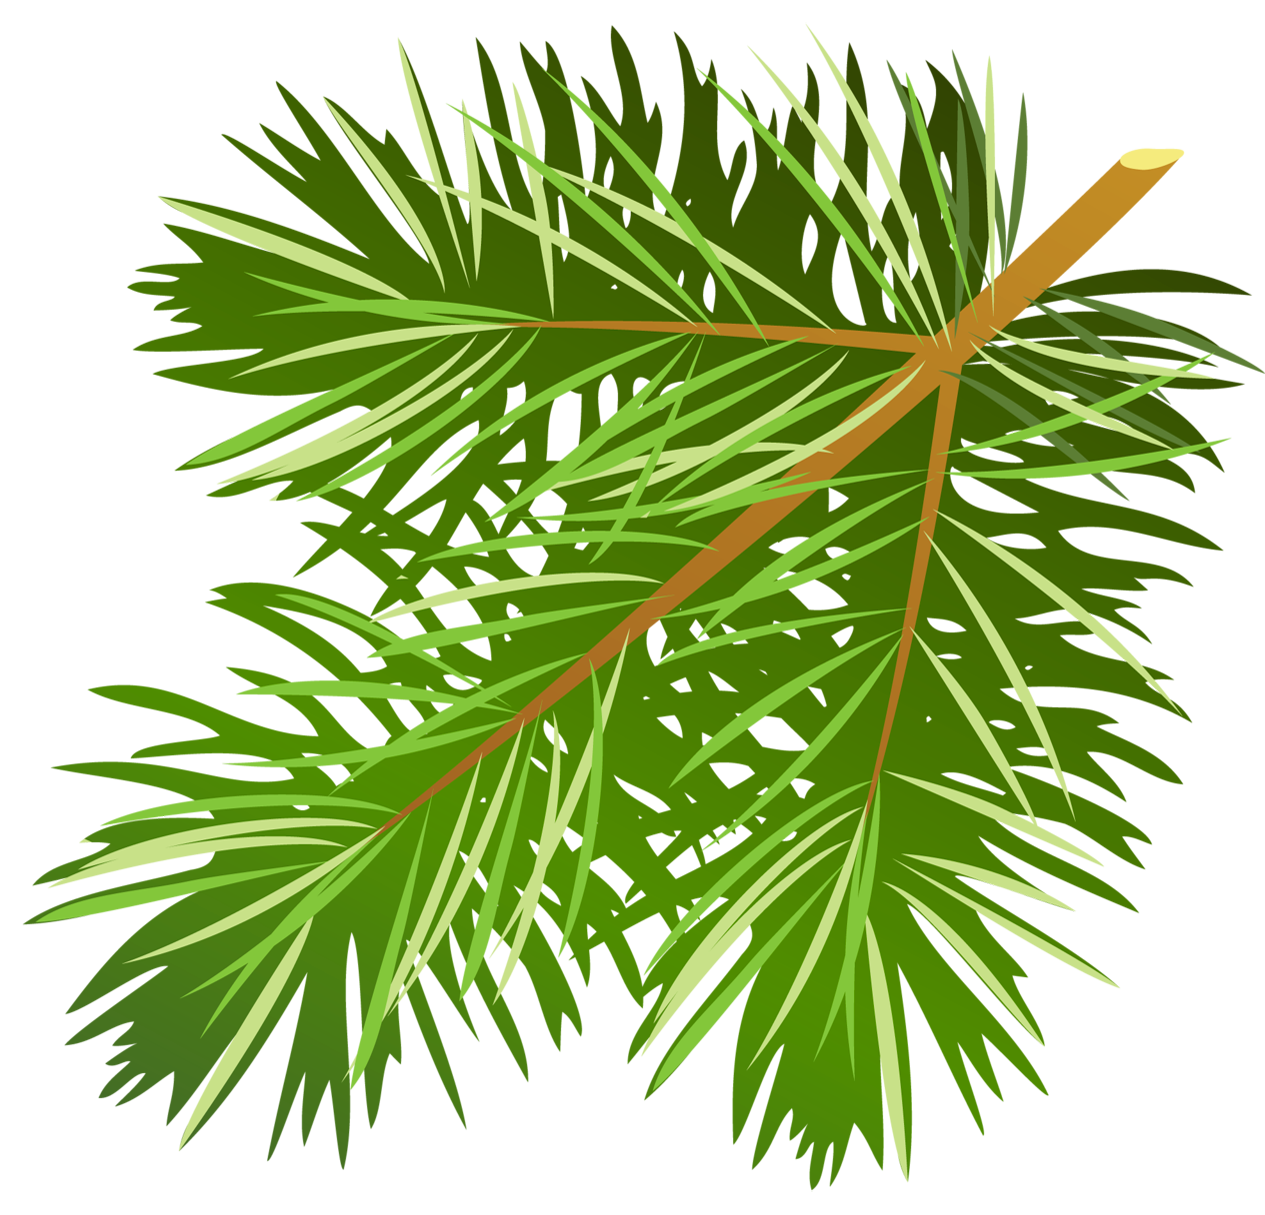 Pine tree branch clipart vector library library Transparent Pine Branch PNG Clipart | Gallery Yopriceville - High ... vector library library